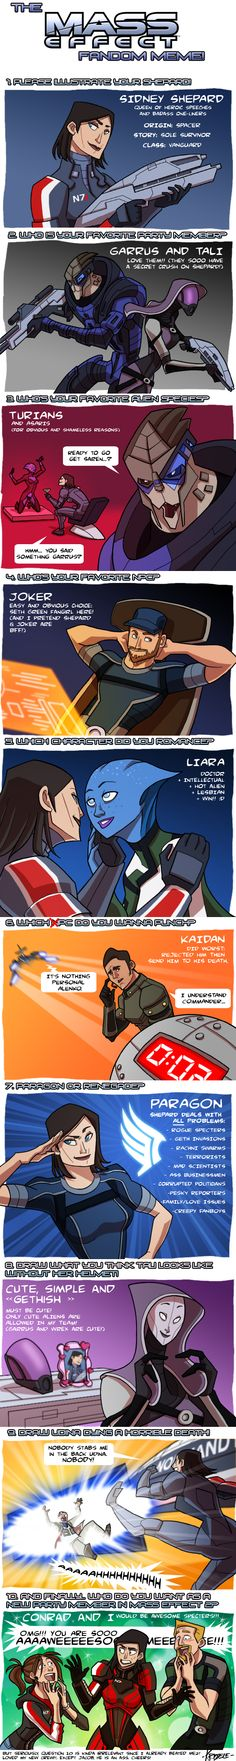 Kristele's Mass Effect Meme by Kristele.deviantart.com  Maybe this weekend I will try to draw this for my Shepard!